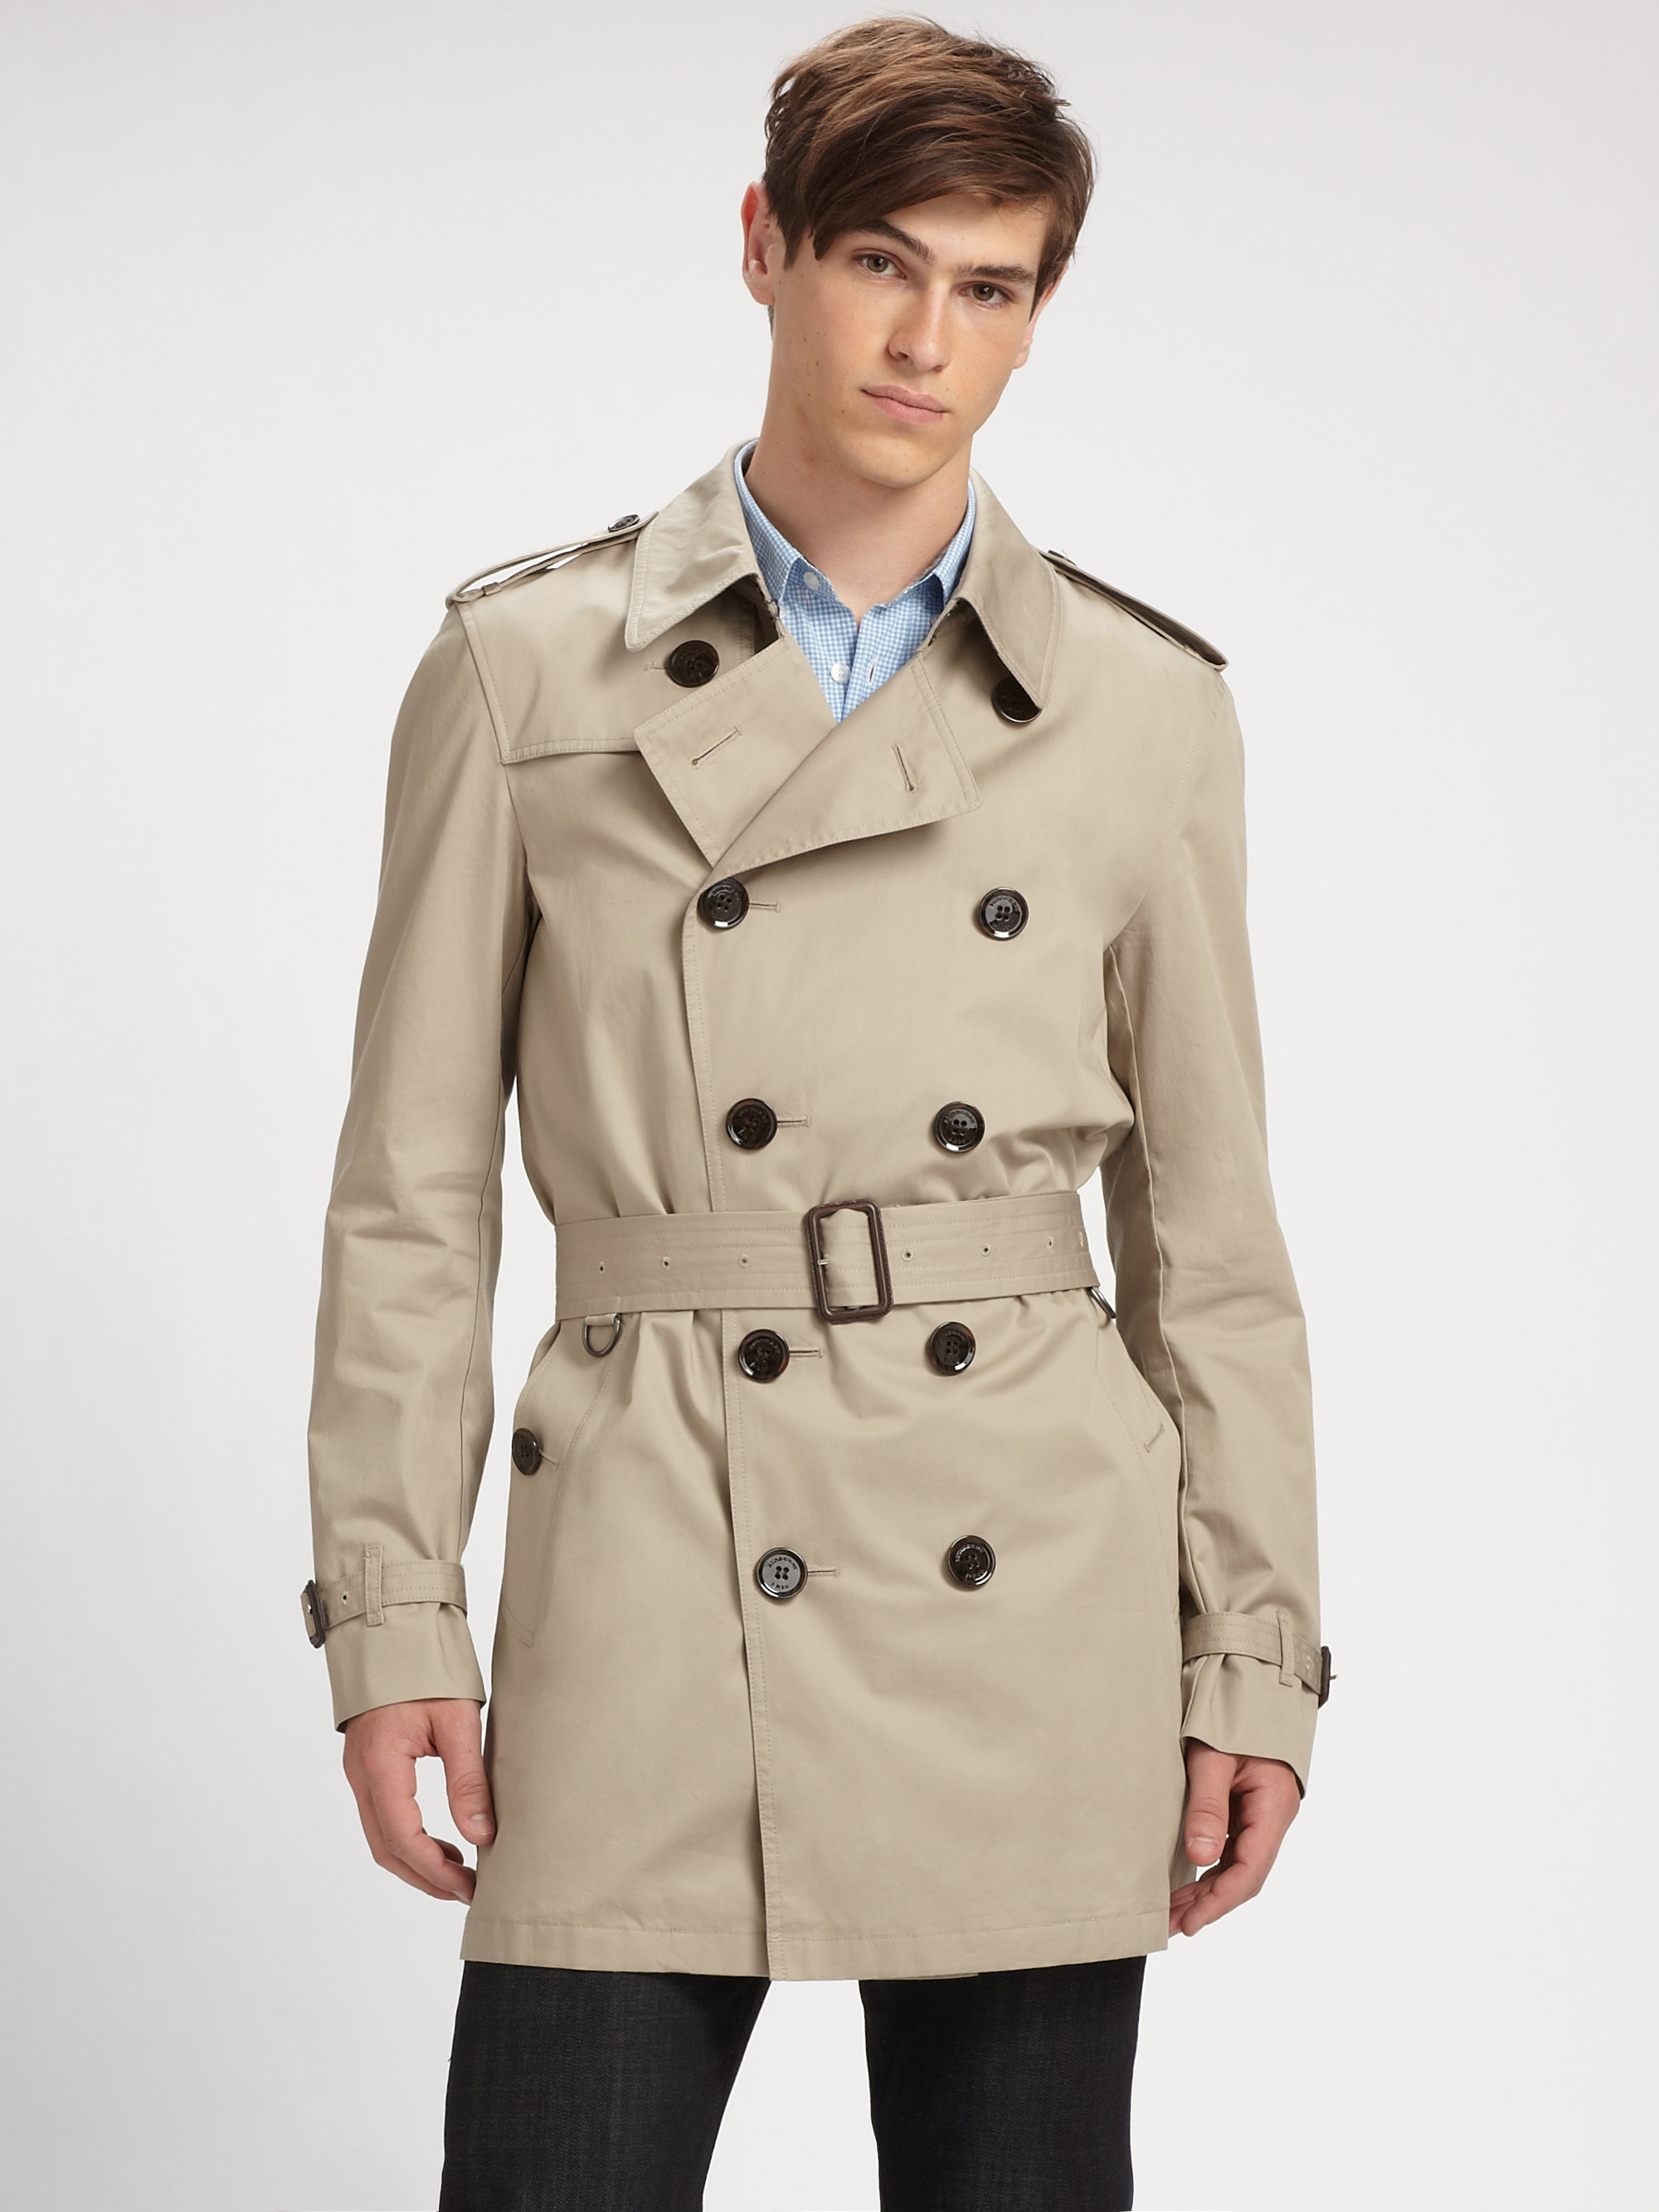 bbcfe8568114 Mens Trench Coat Burberry Sale